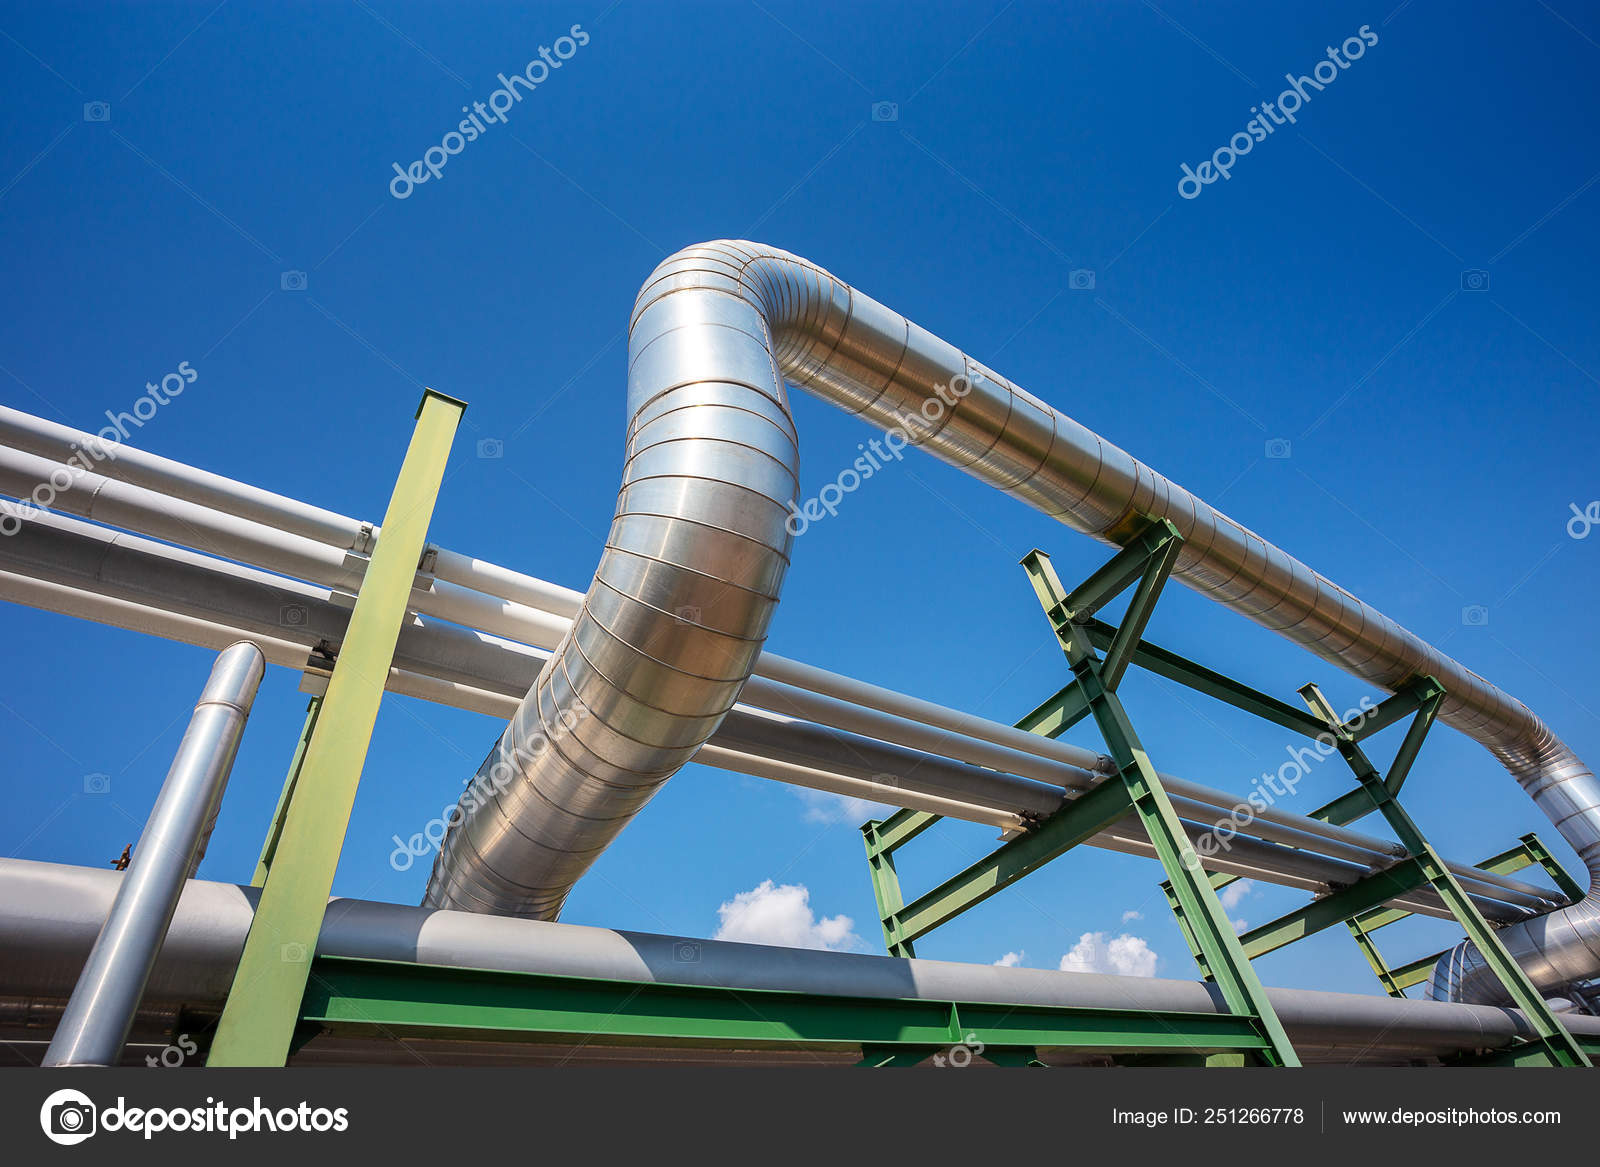 Insulation of steam pipe for steam transportation on lack in